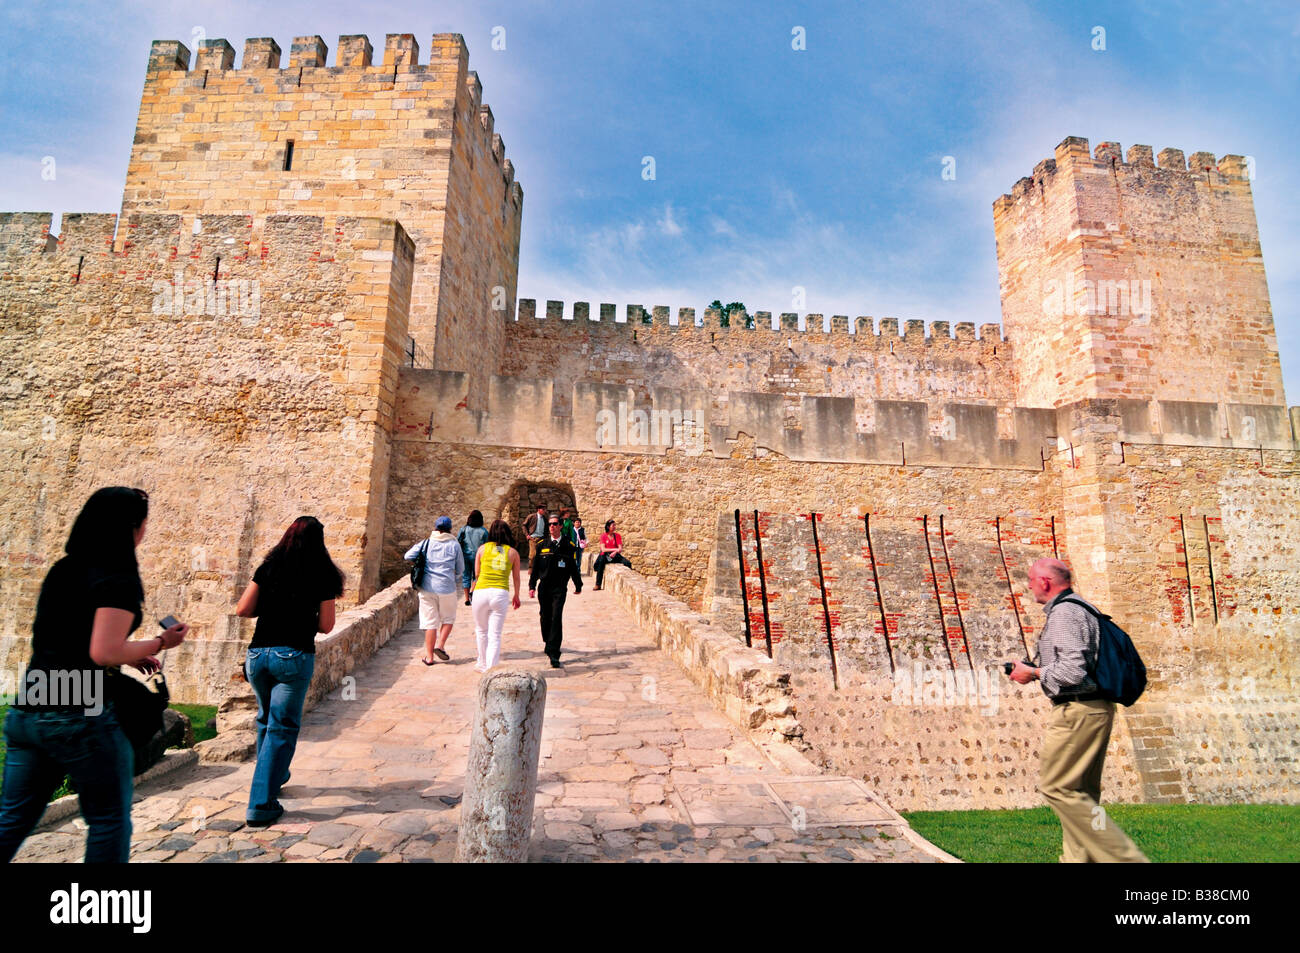 Tourists visiting the Castle Saint George in Lisbon - Stock Image